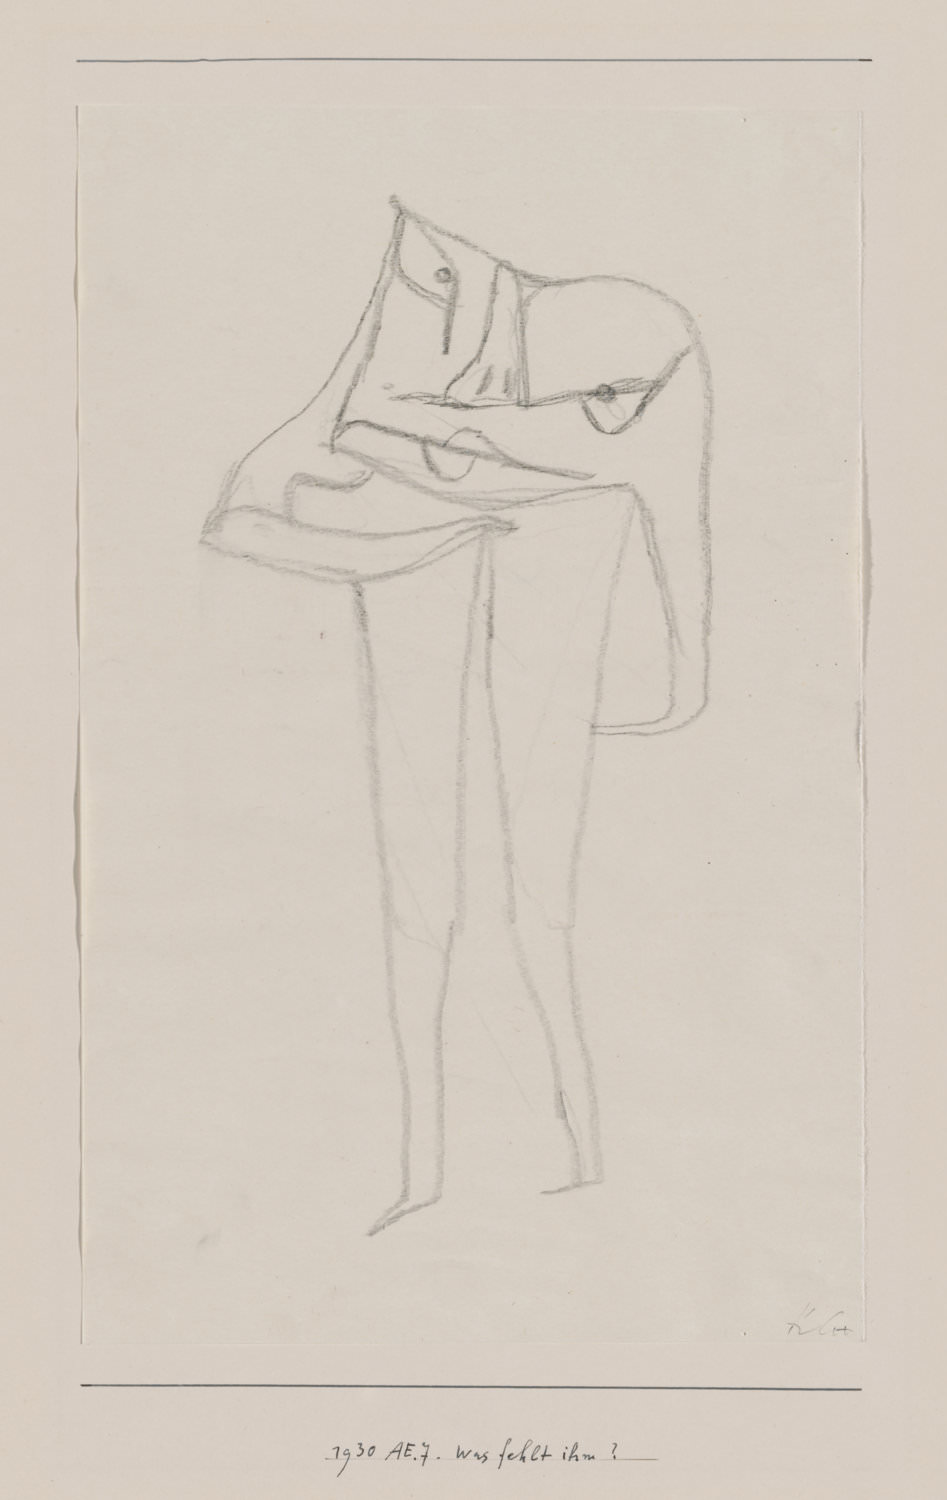 Paul Klee,  was fehlt ihm? , 1930, 267, w hat's the Matter with Him? , pencil on paper on cardboard, 32,9 x 20,9 cm, Zentrum Paul Klee, Bern © Zentrum Paul Klee, Bern, Bildarchiv